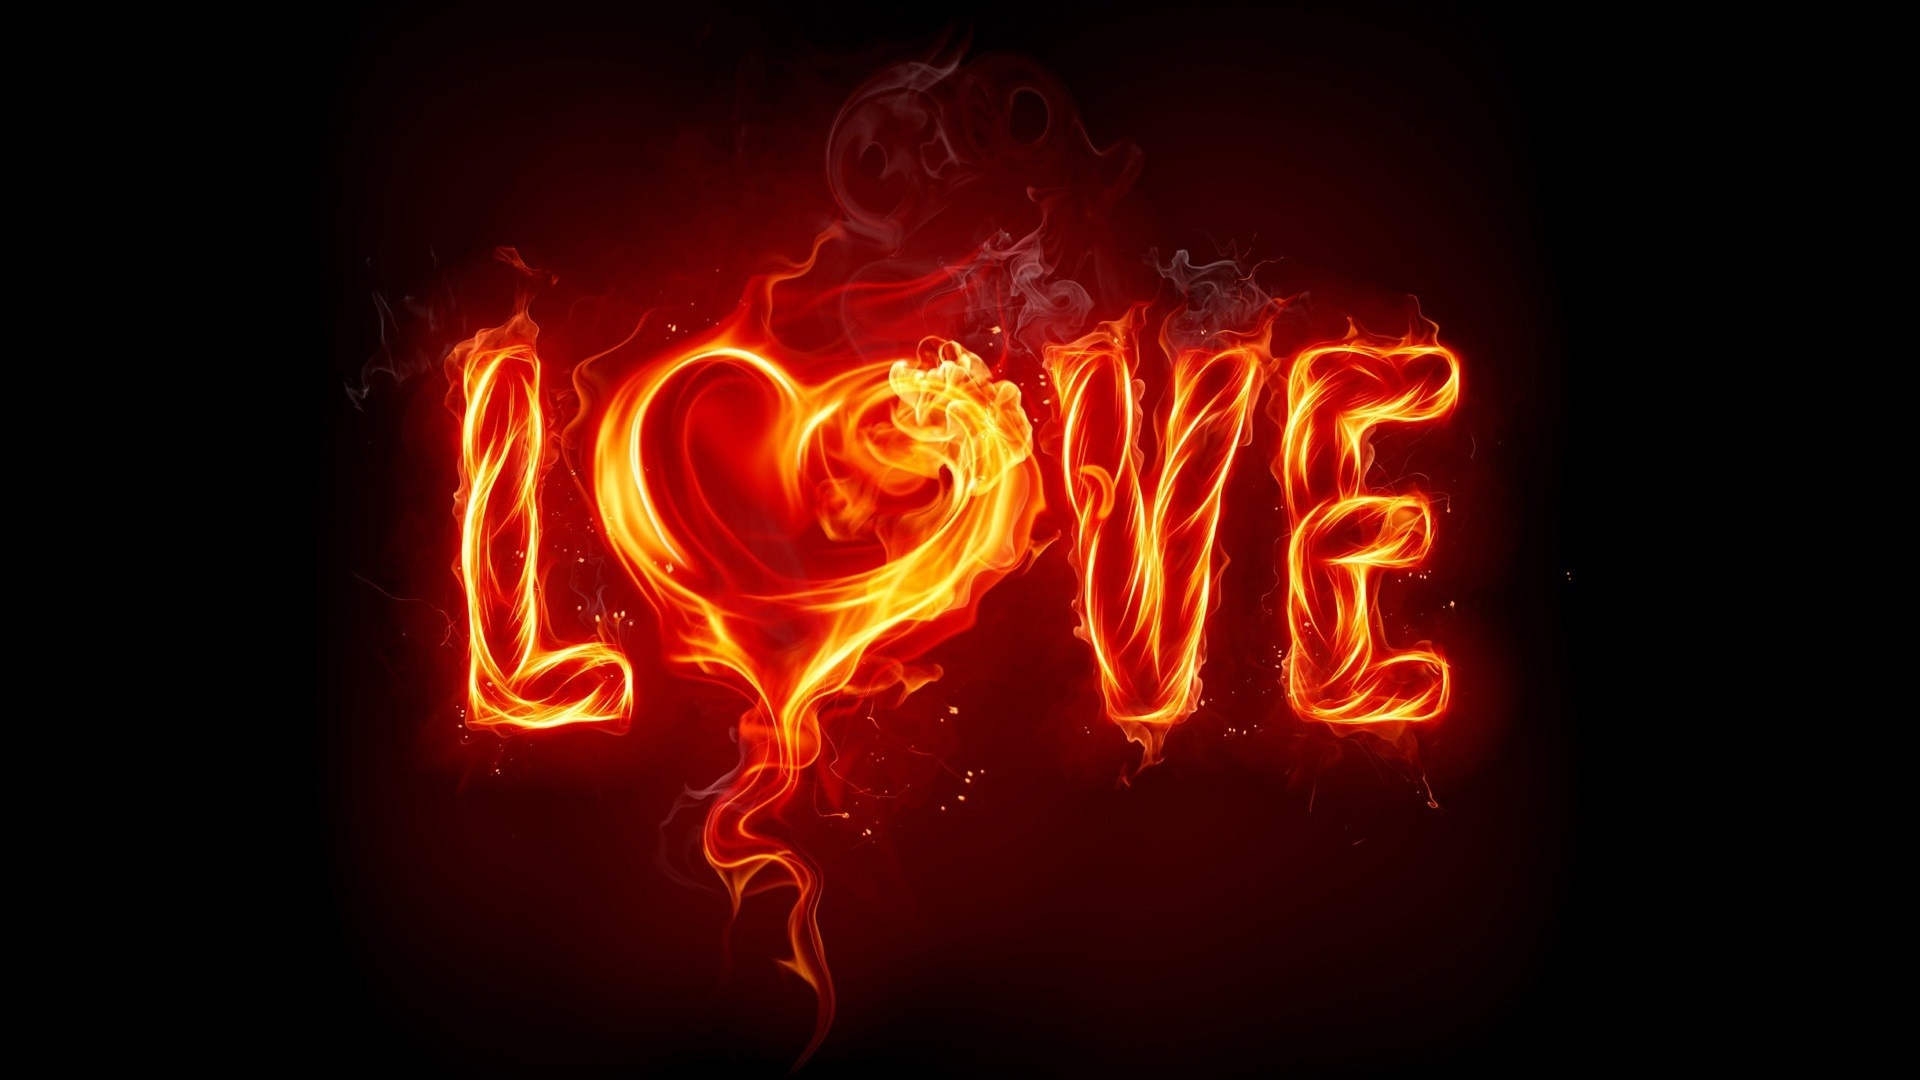 1920x1080 Hot Love  HD Image Abstract 3D